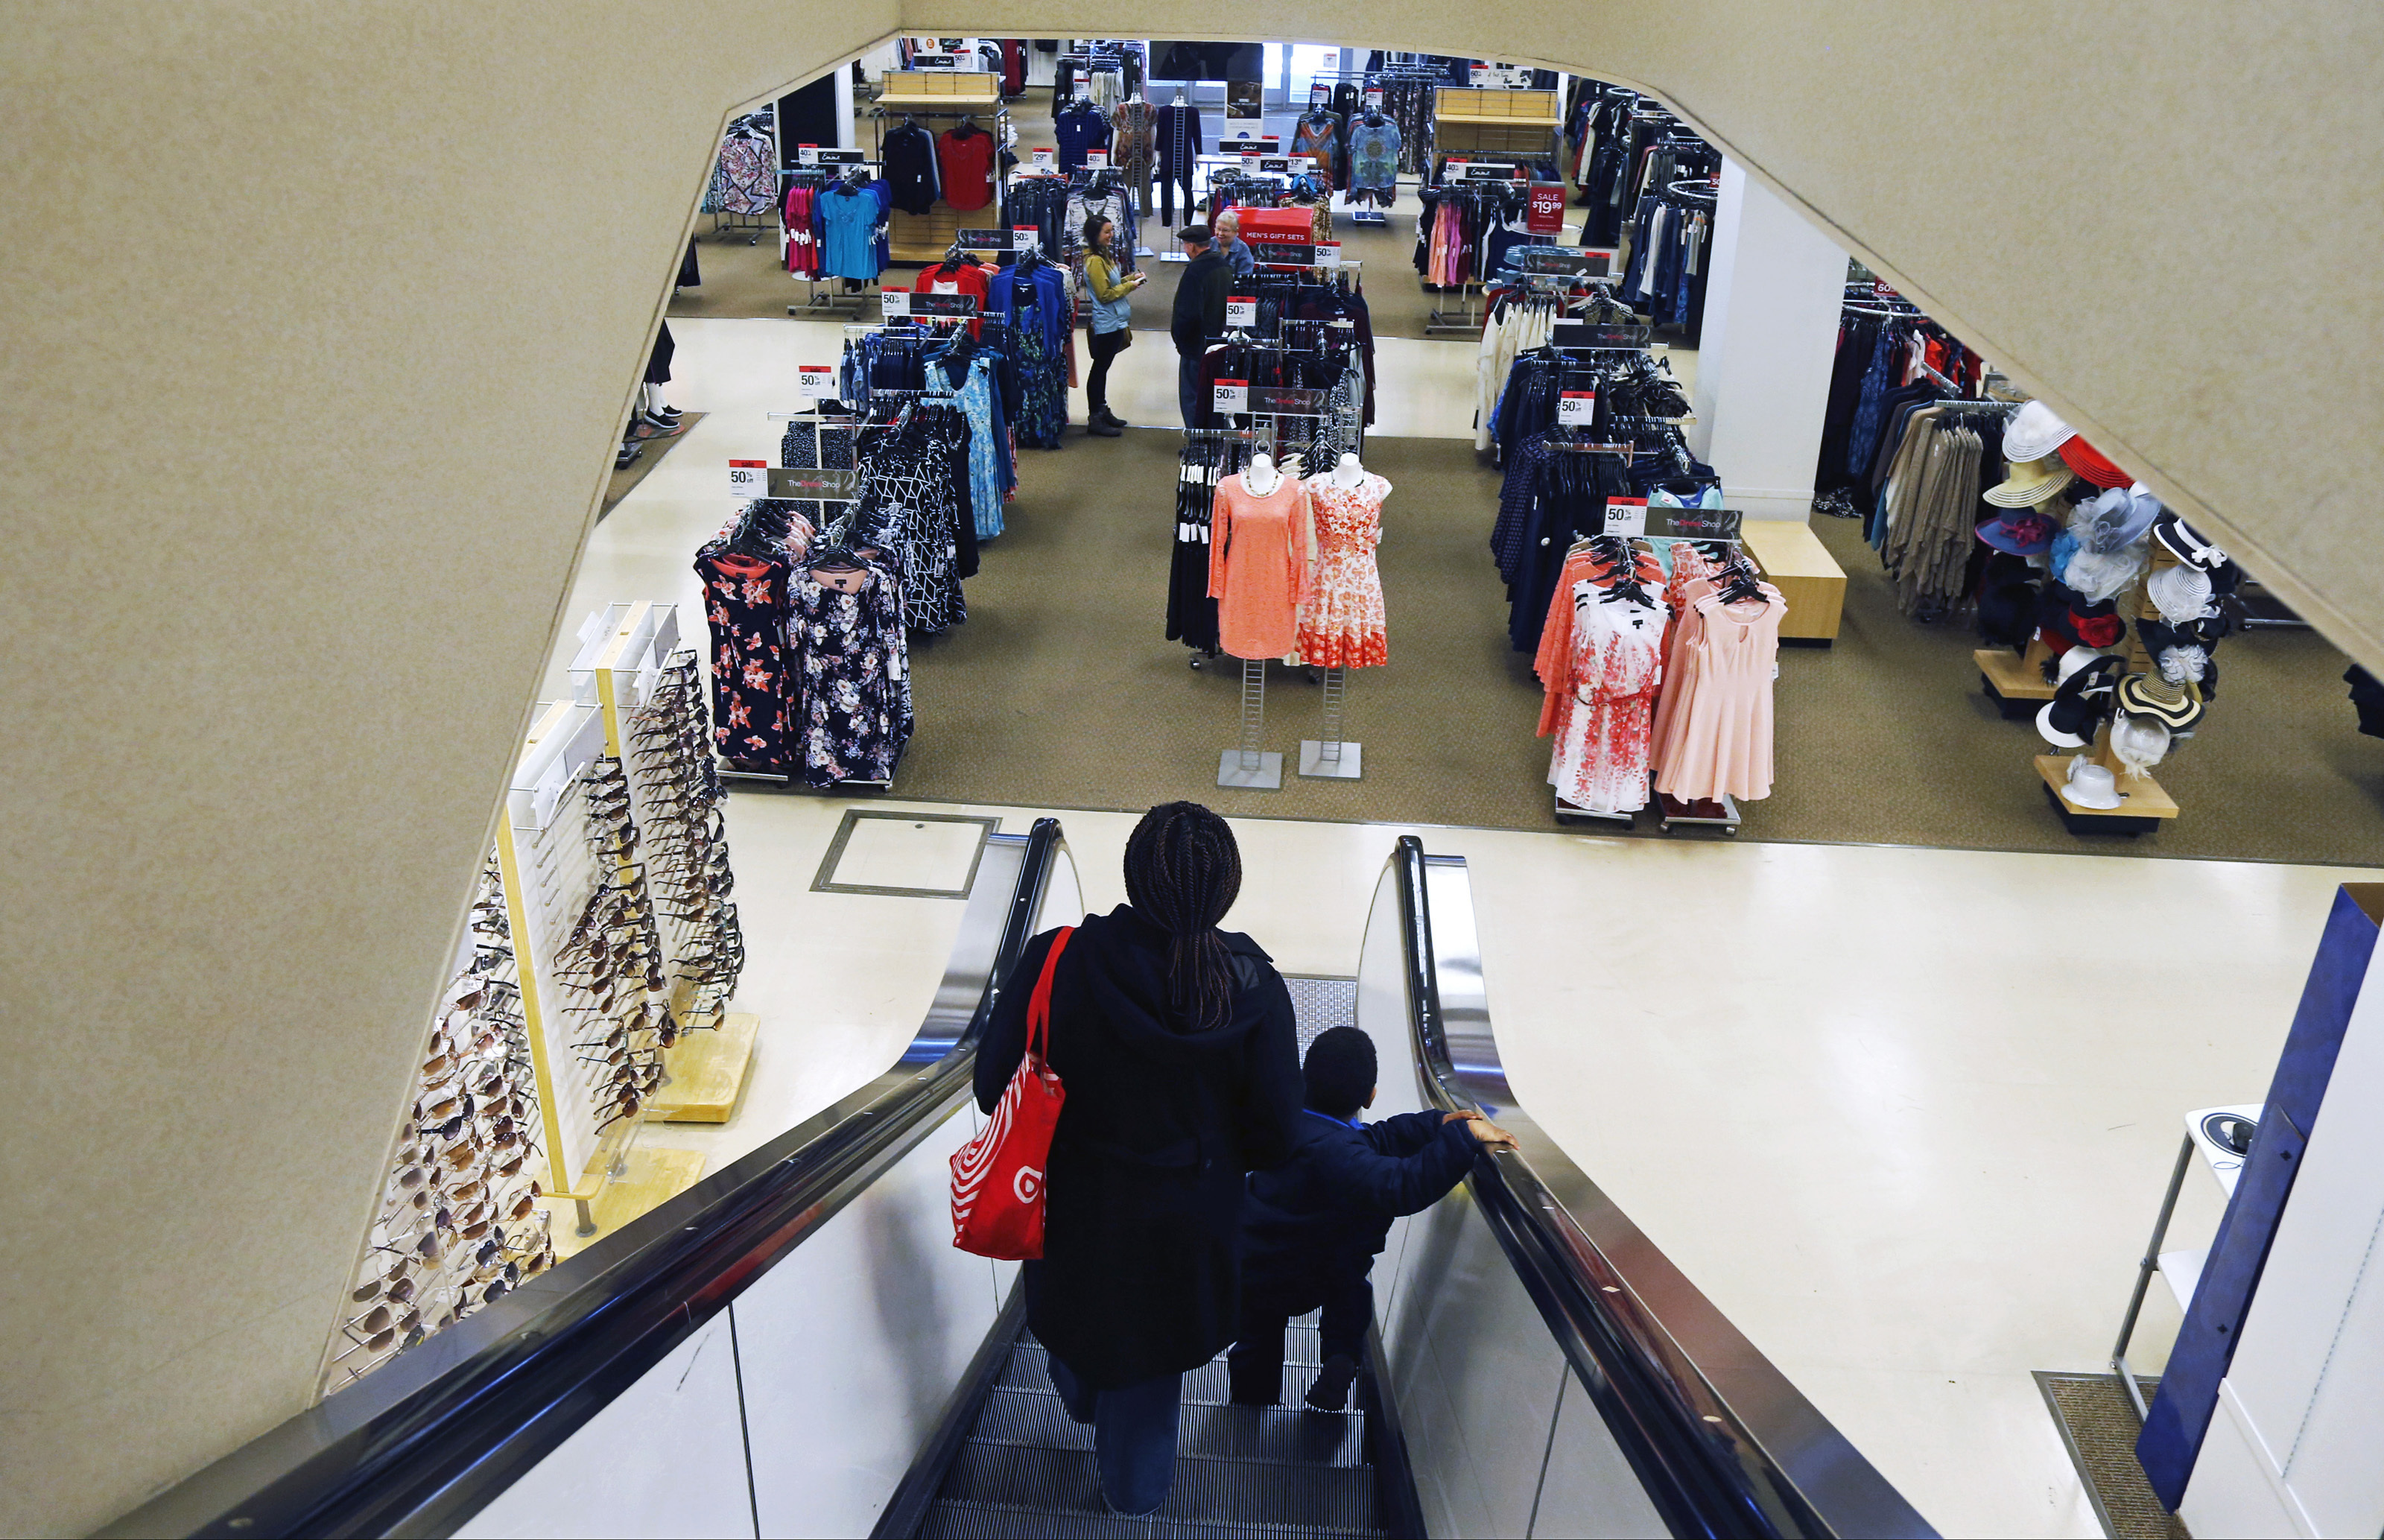 In this March 22, 2017, file photo, a woman and child ride the escalator at a Sears store in St. Paul, Minn.  Sears has filed for Chapter 11 bankruptcy protection Monday, Oct. 15, 2018.